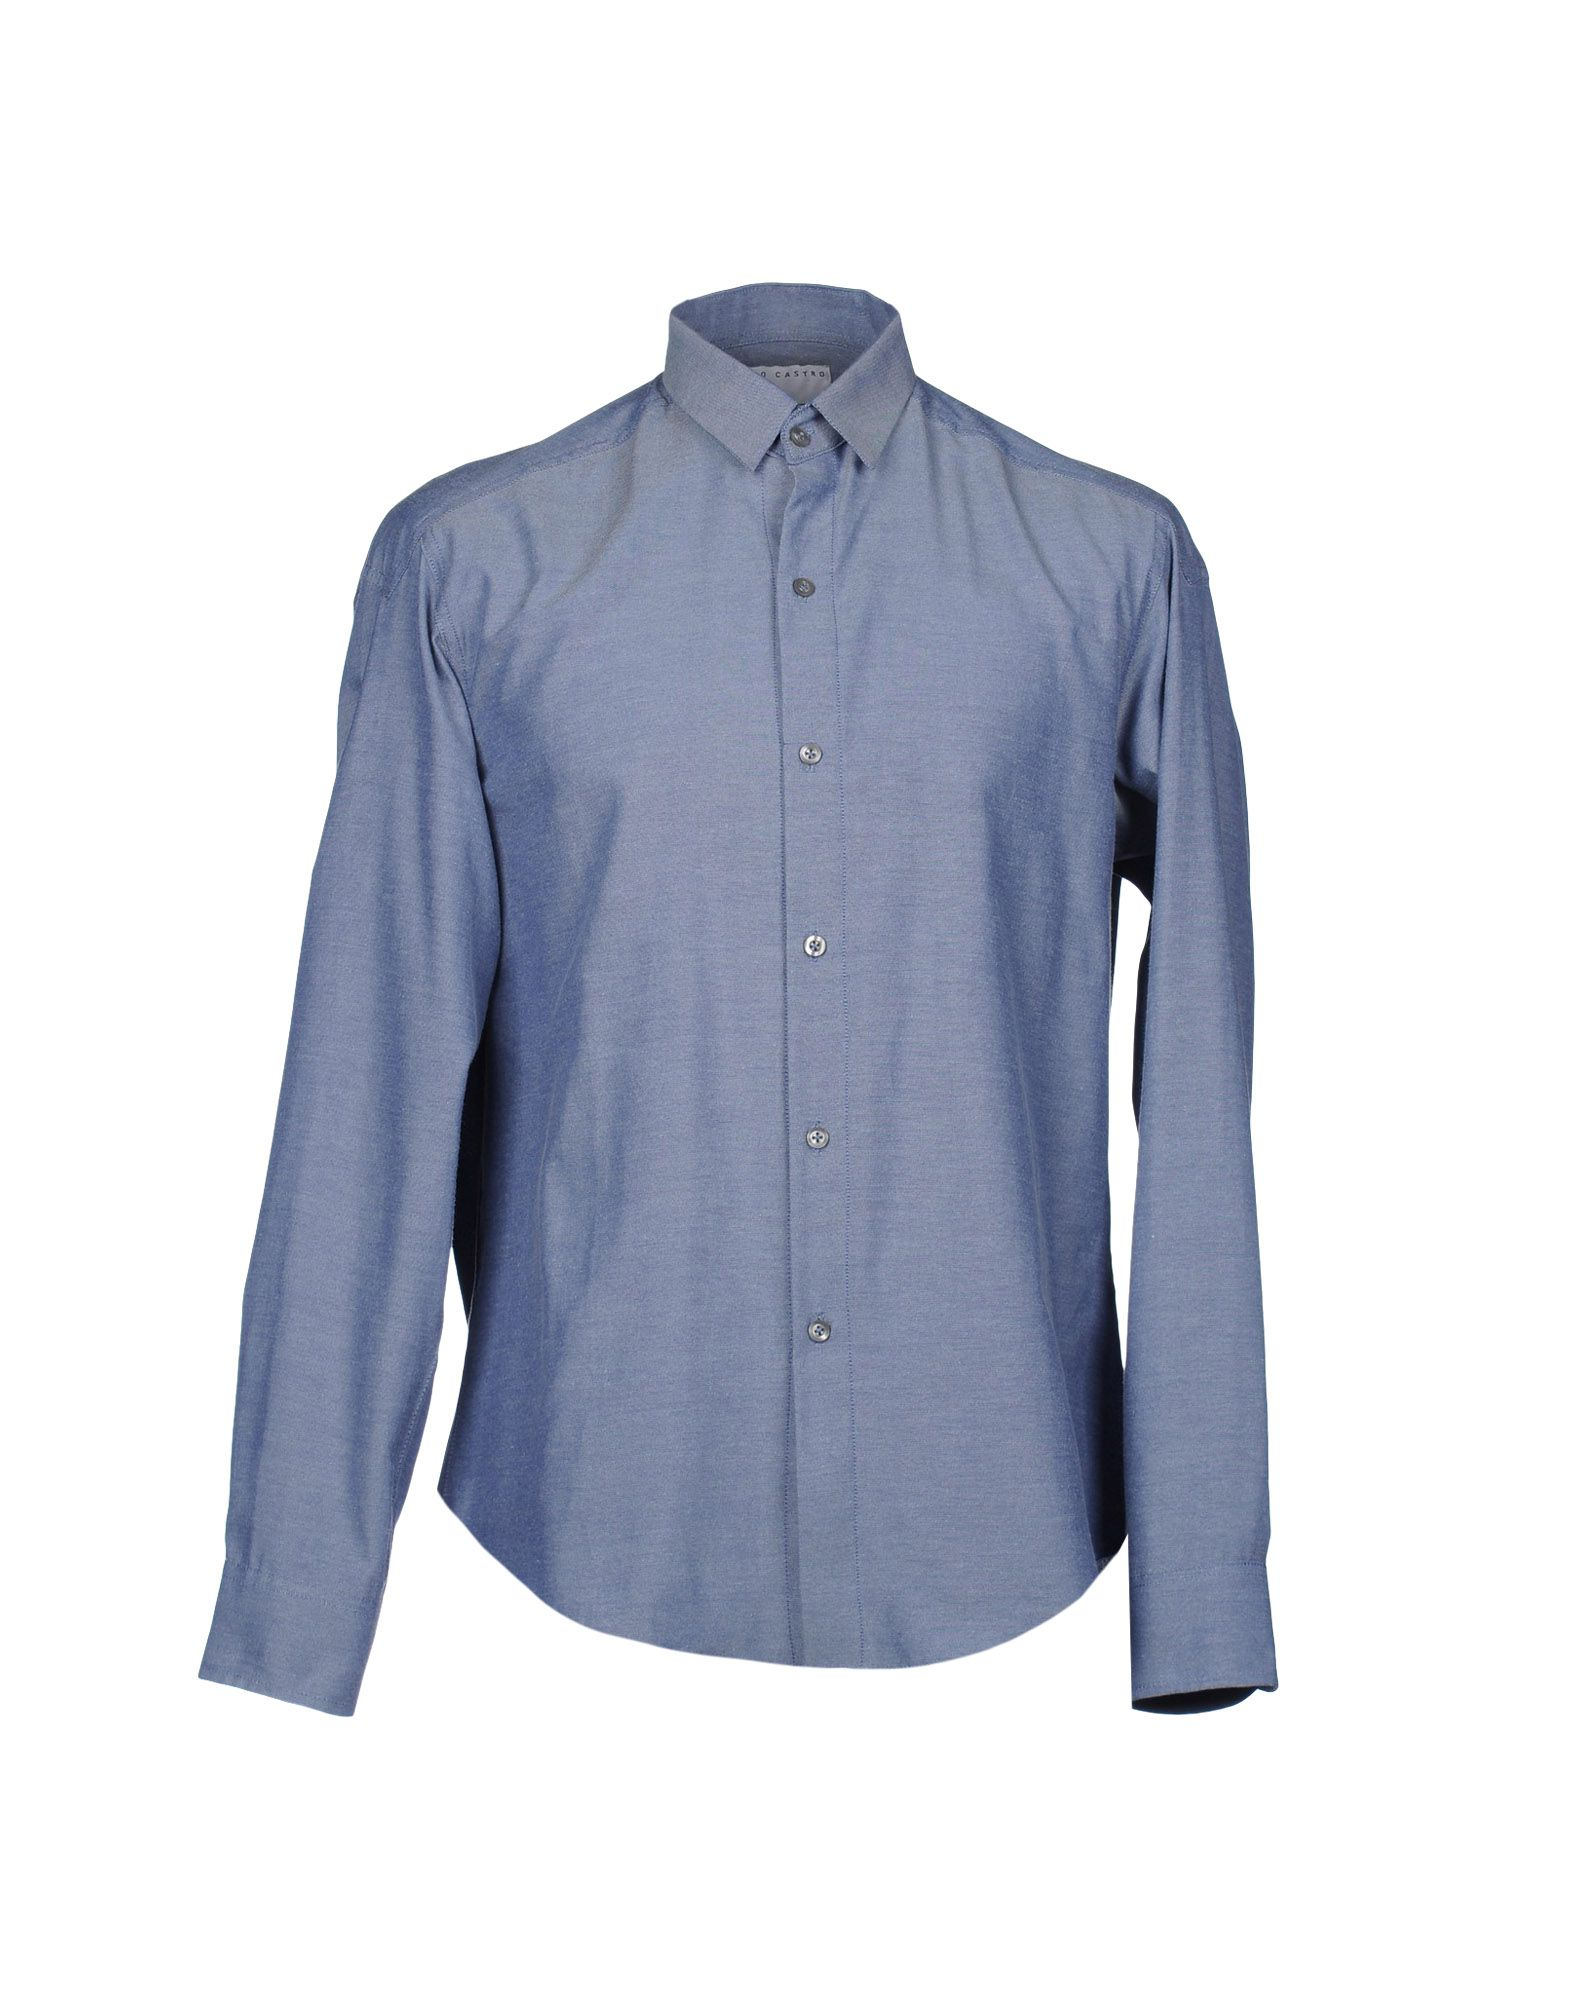 lucio castro sleeve shirt in blue for lyst